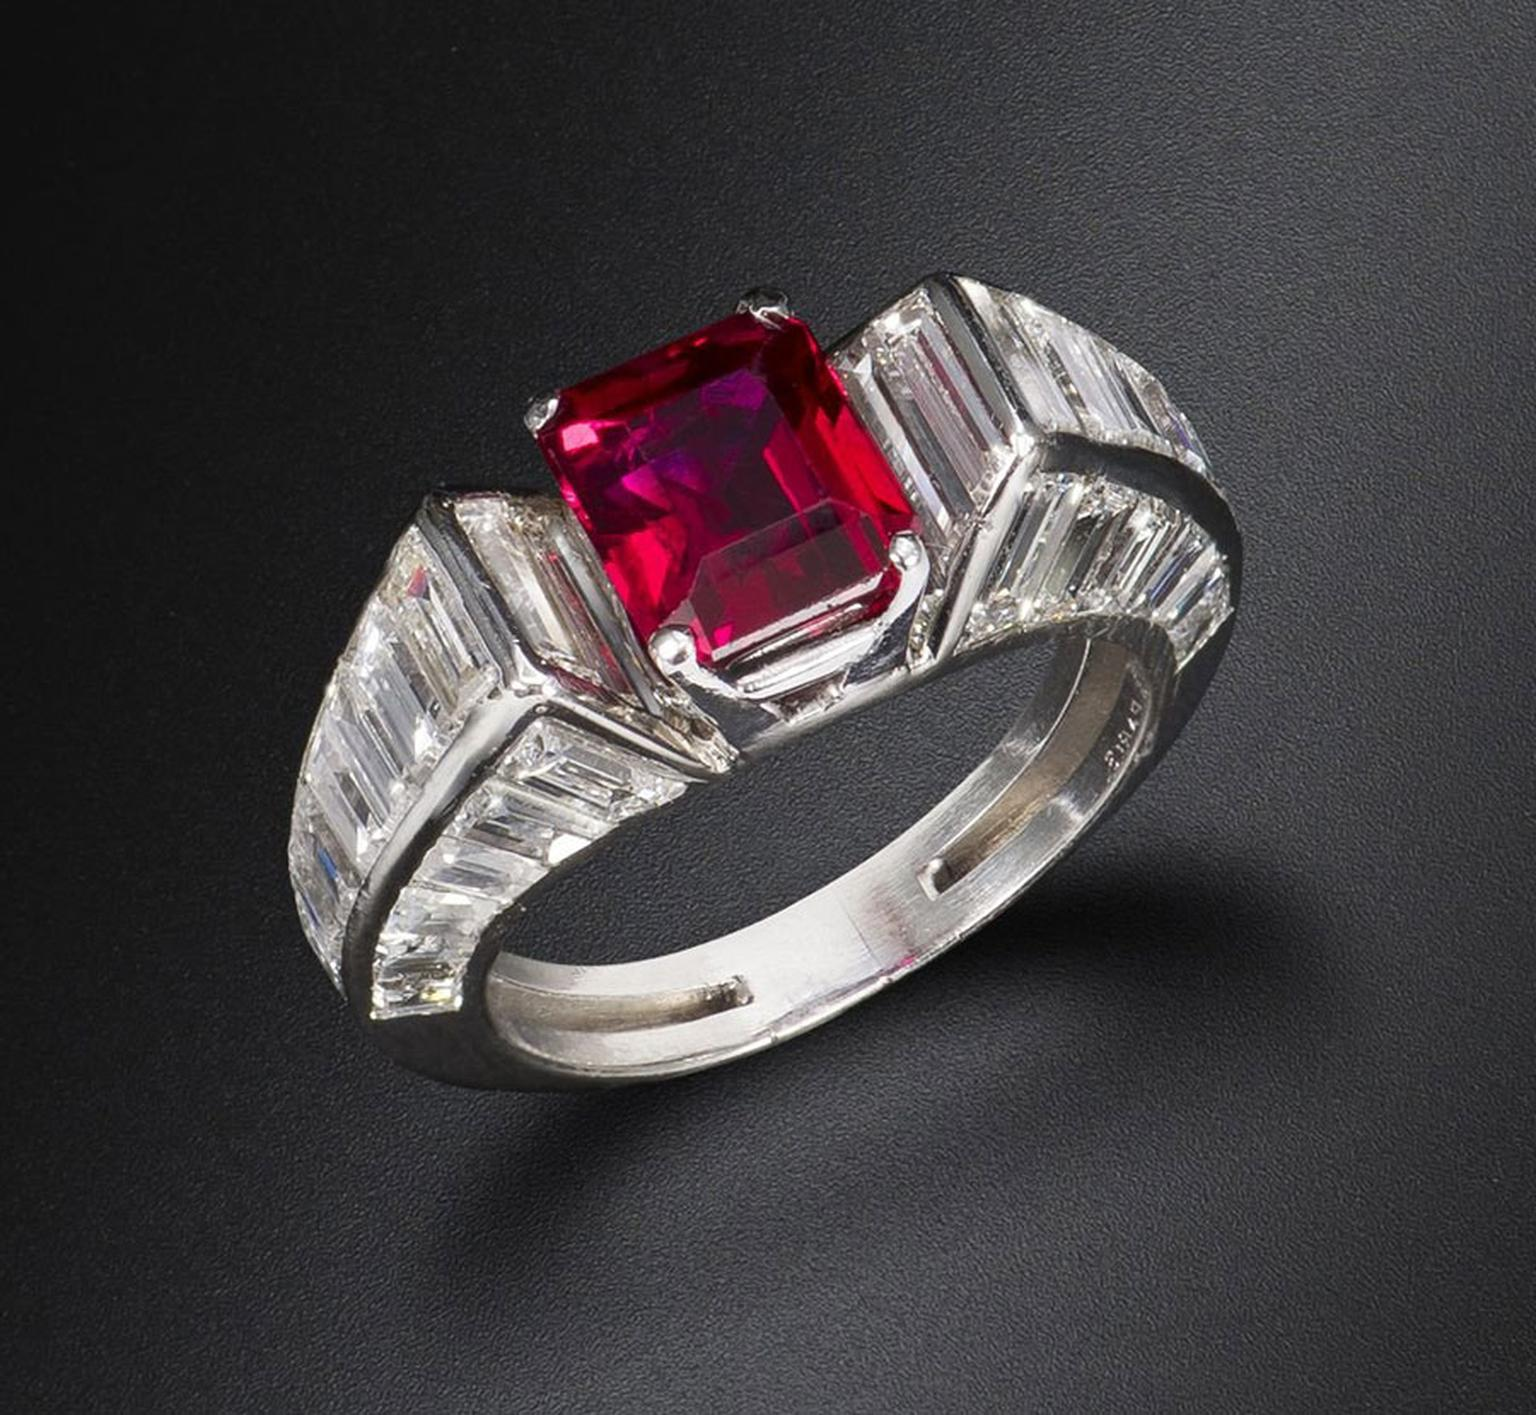 Bonhams-A-ruby-and-diamond-ring-by-Van-Cleef-Arpels.jpg